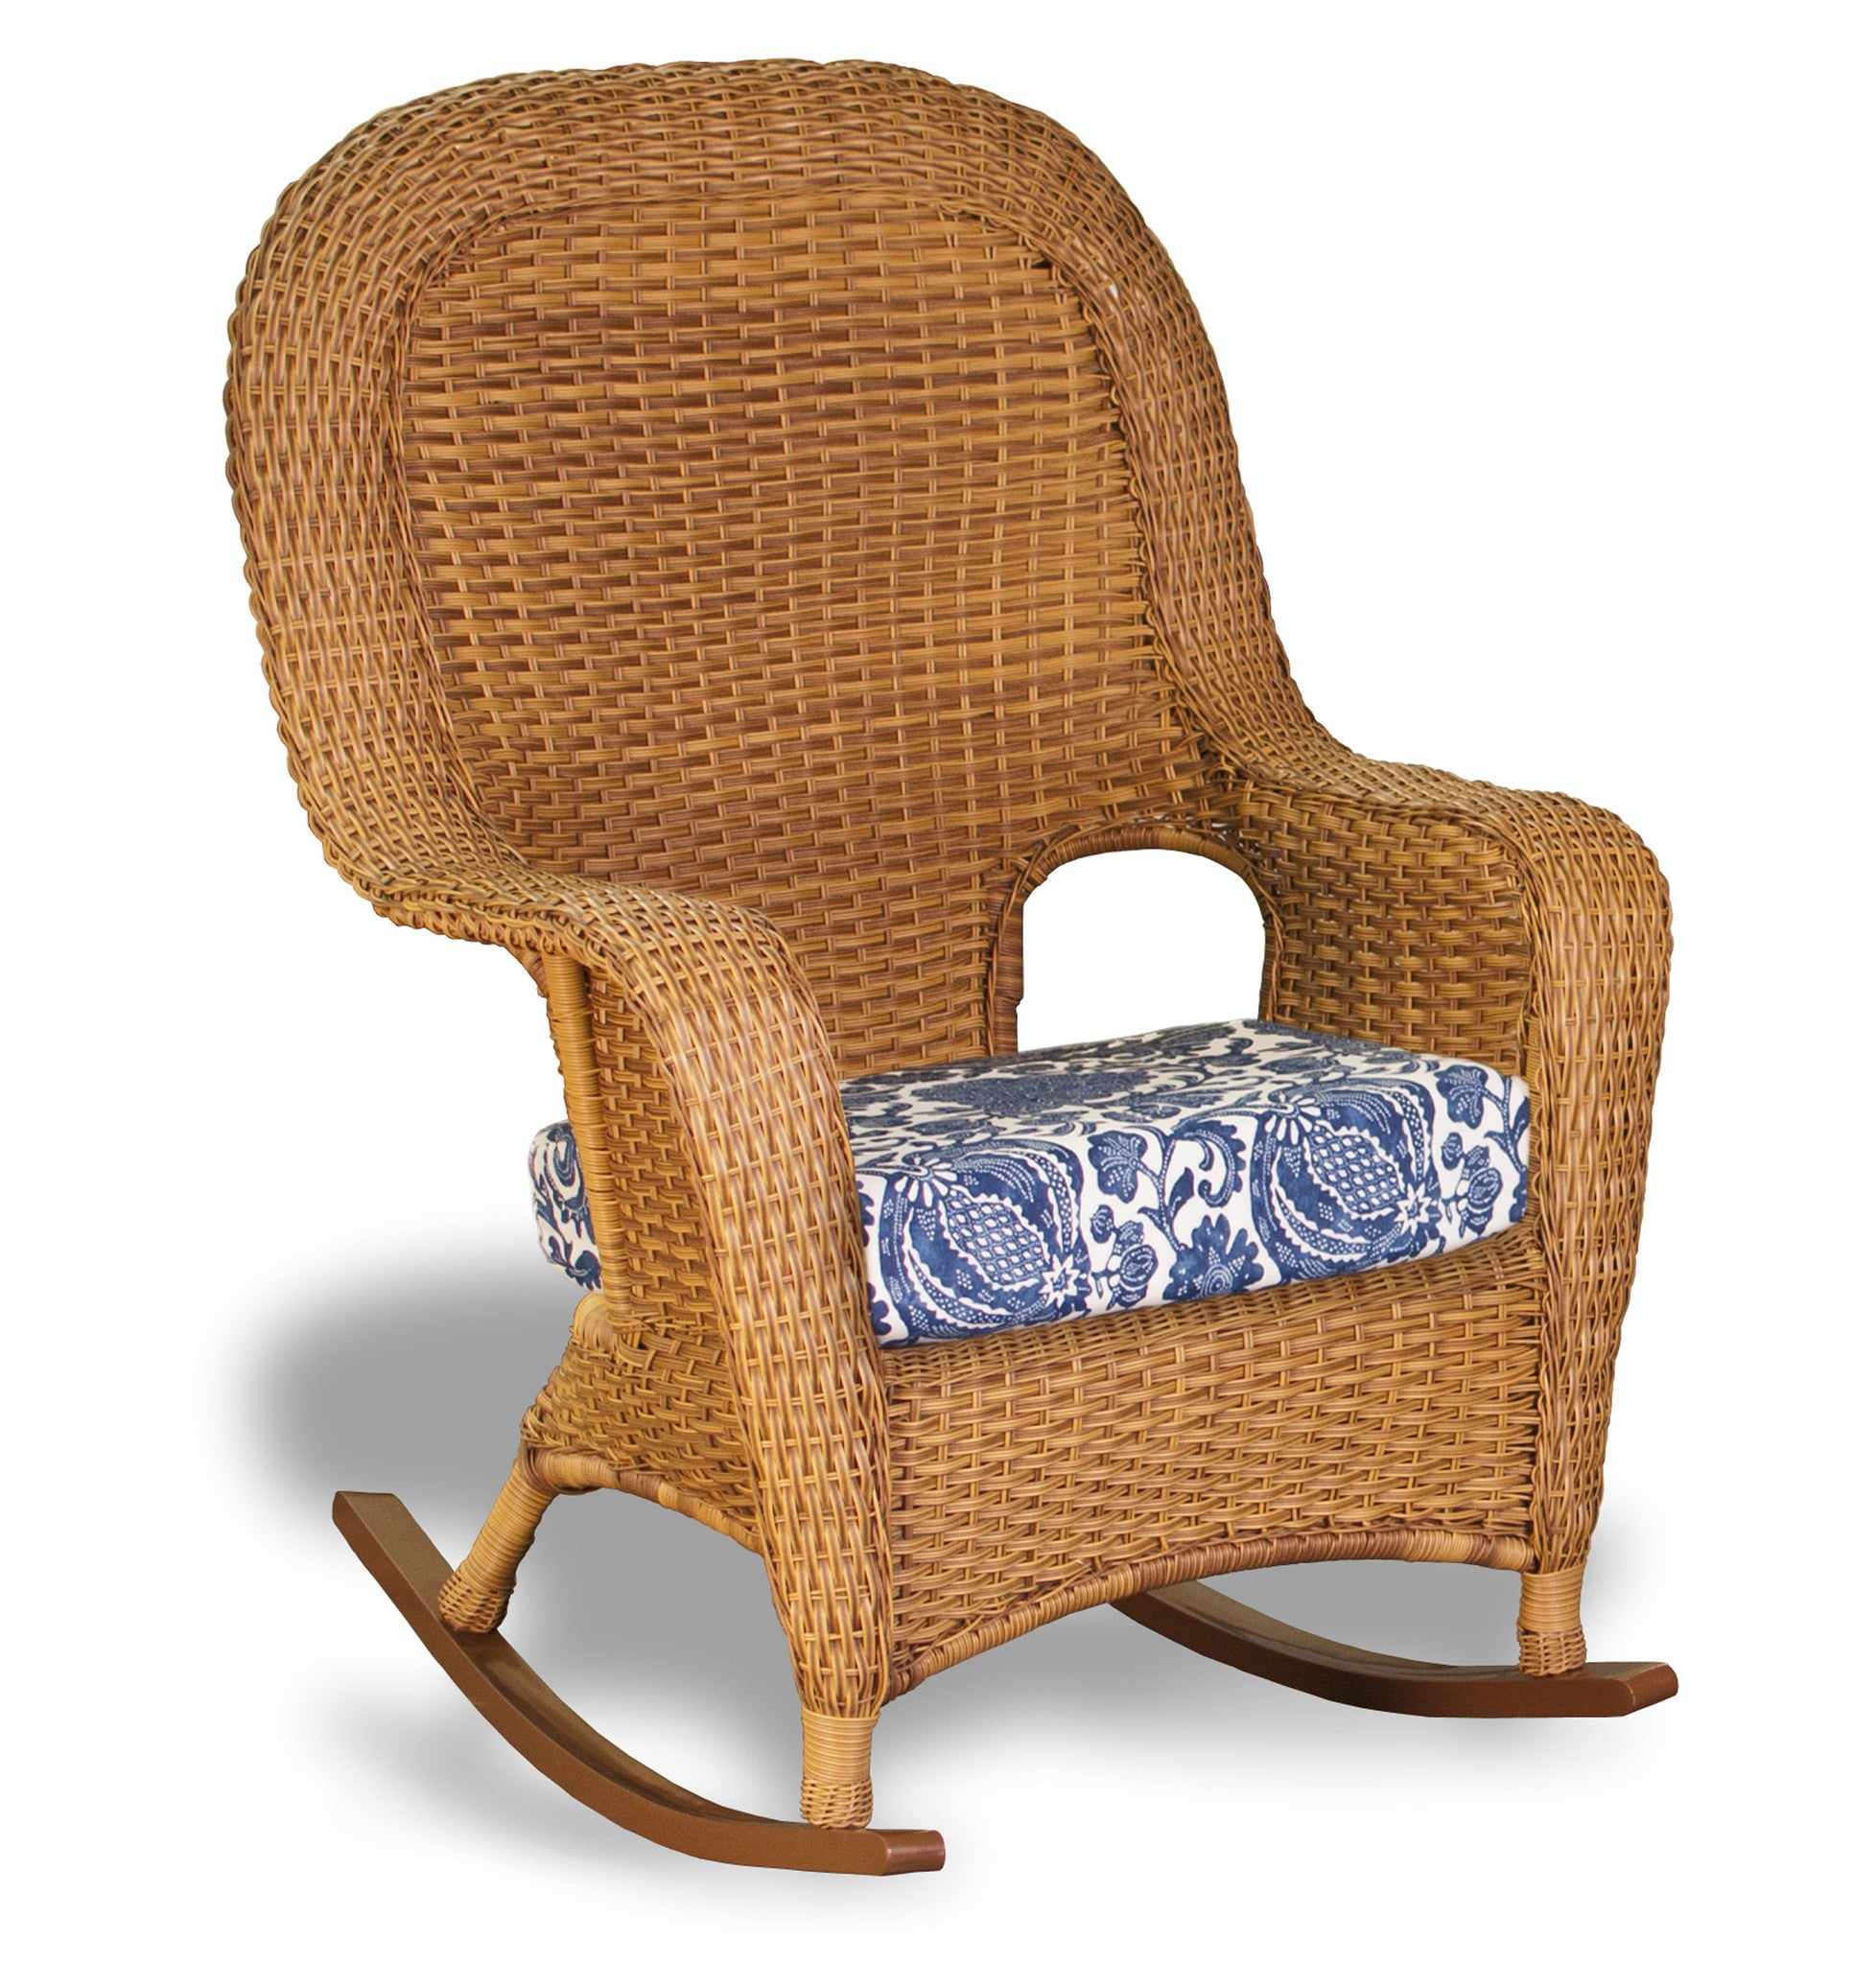 haven b brown rocking depot bay all wicker spring the outdoor sky n home with chairs blue weather furniture hampton cushion chair patio outdoors